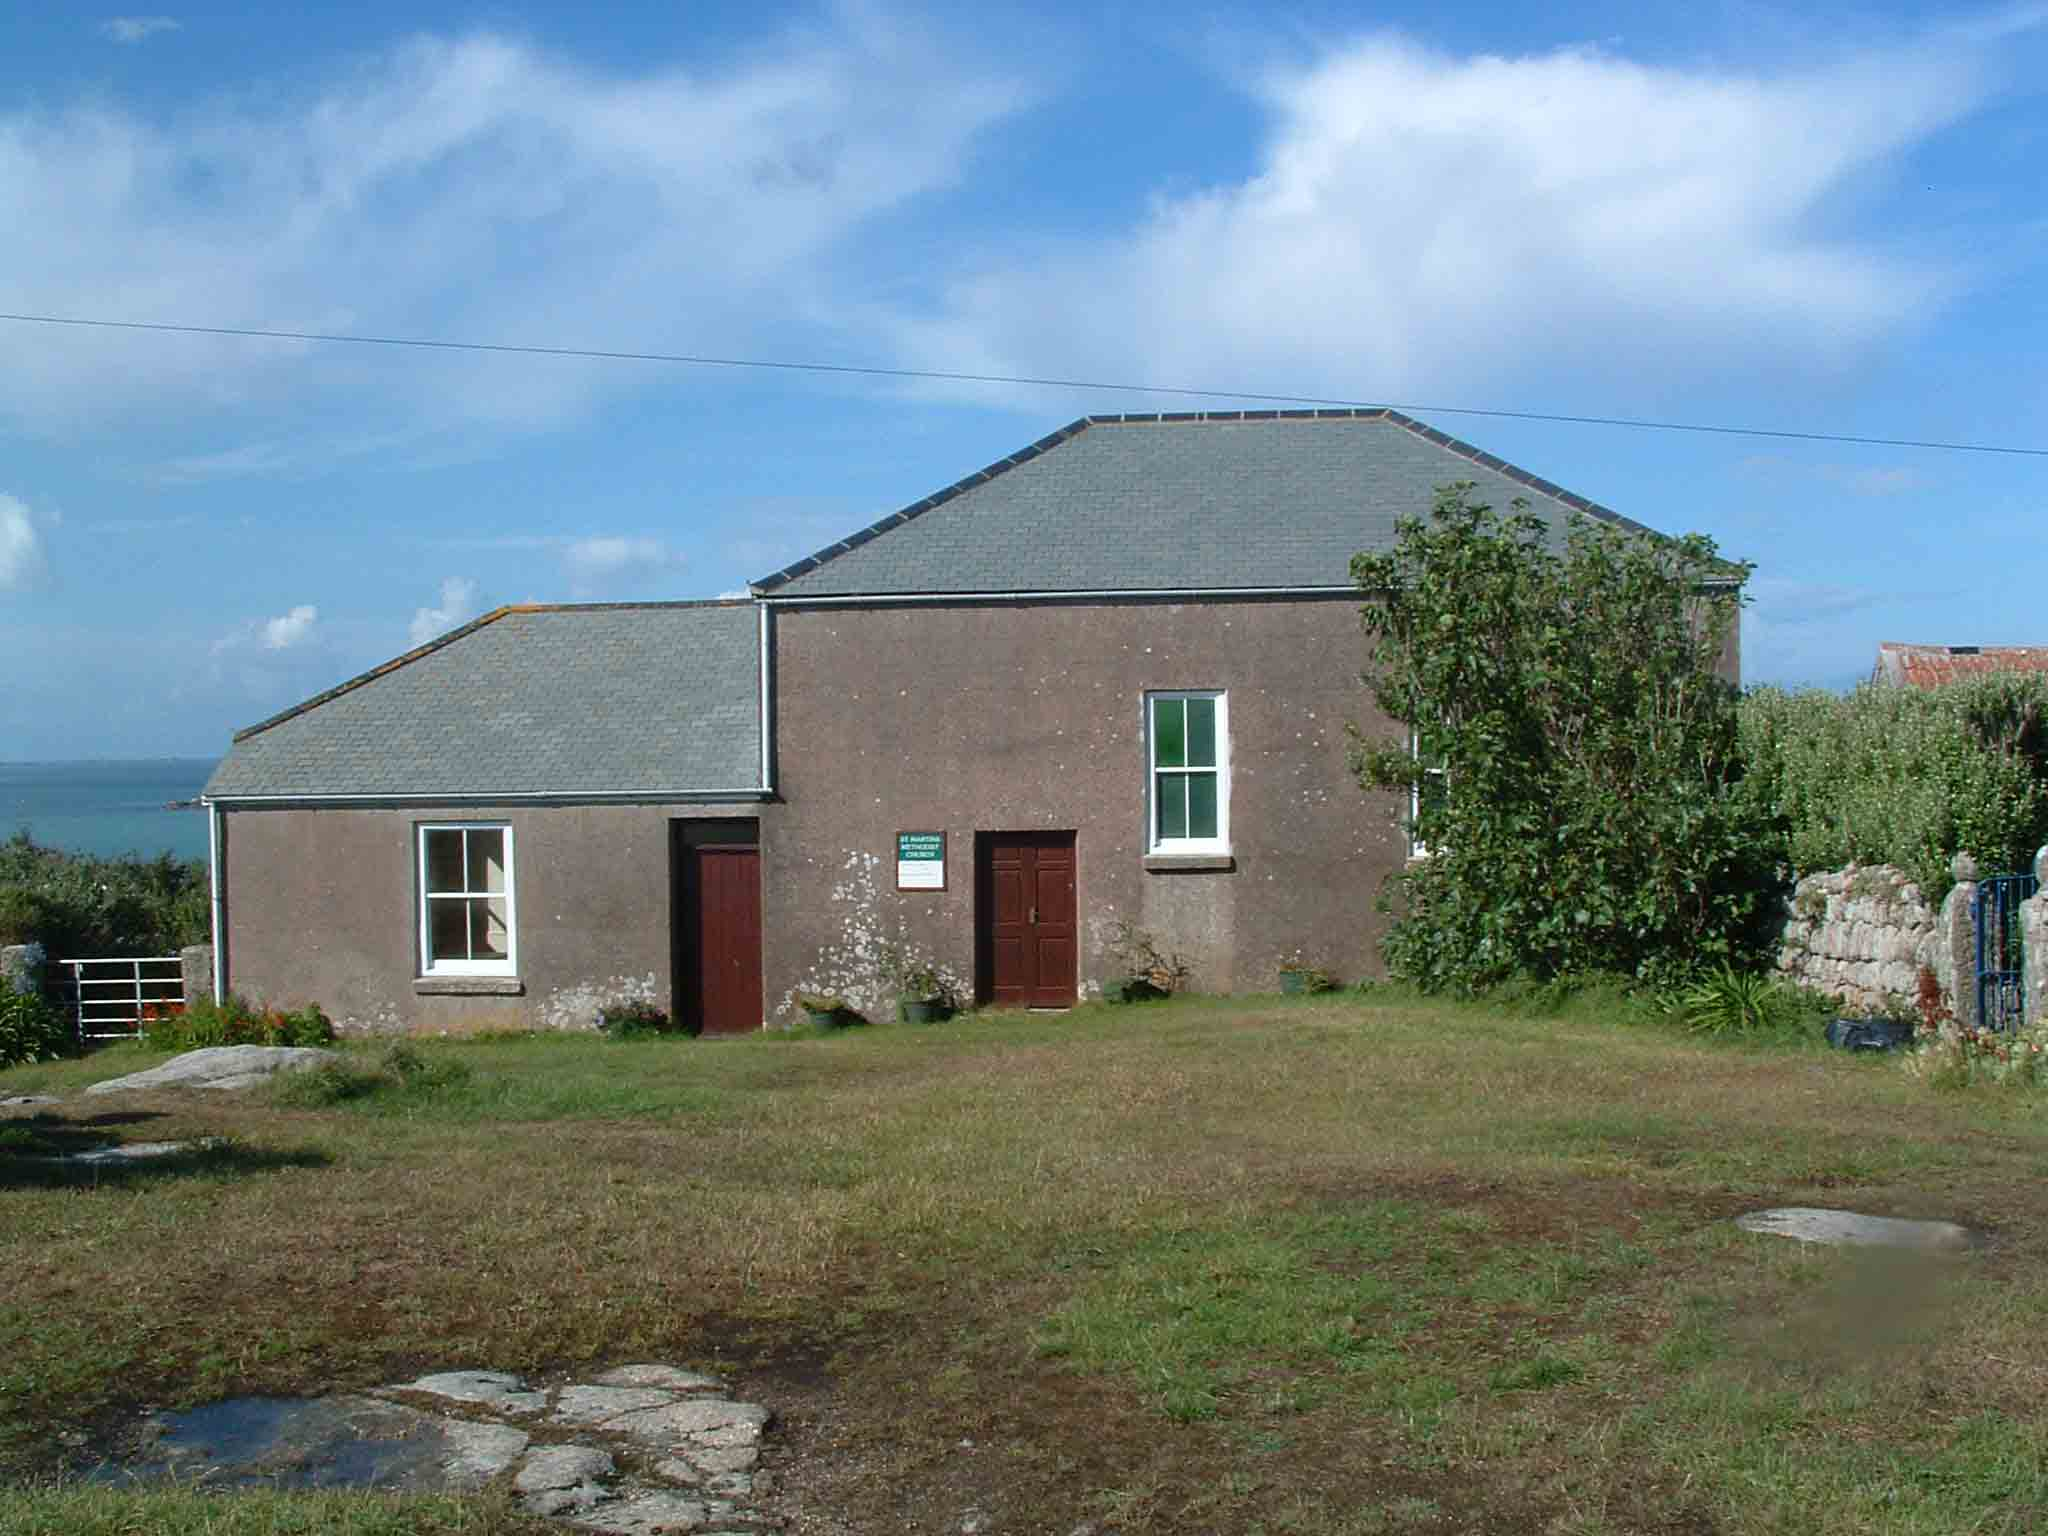 St. Martin's Methodist Church